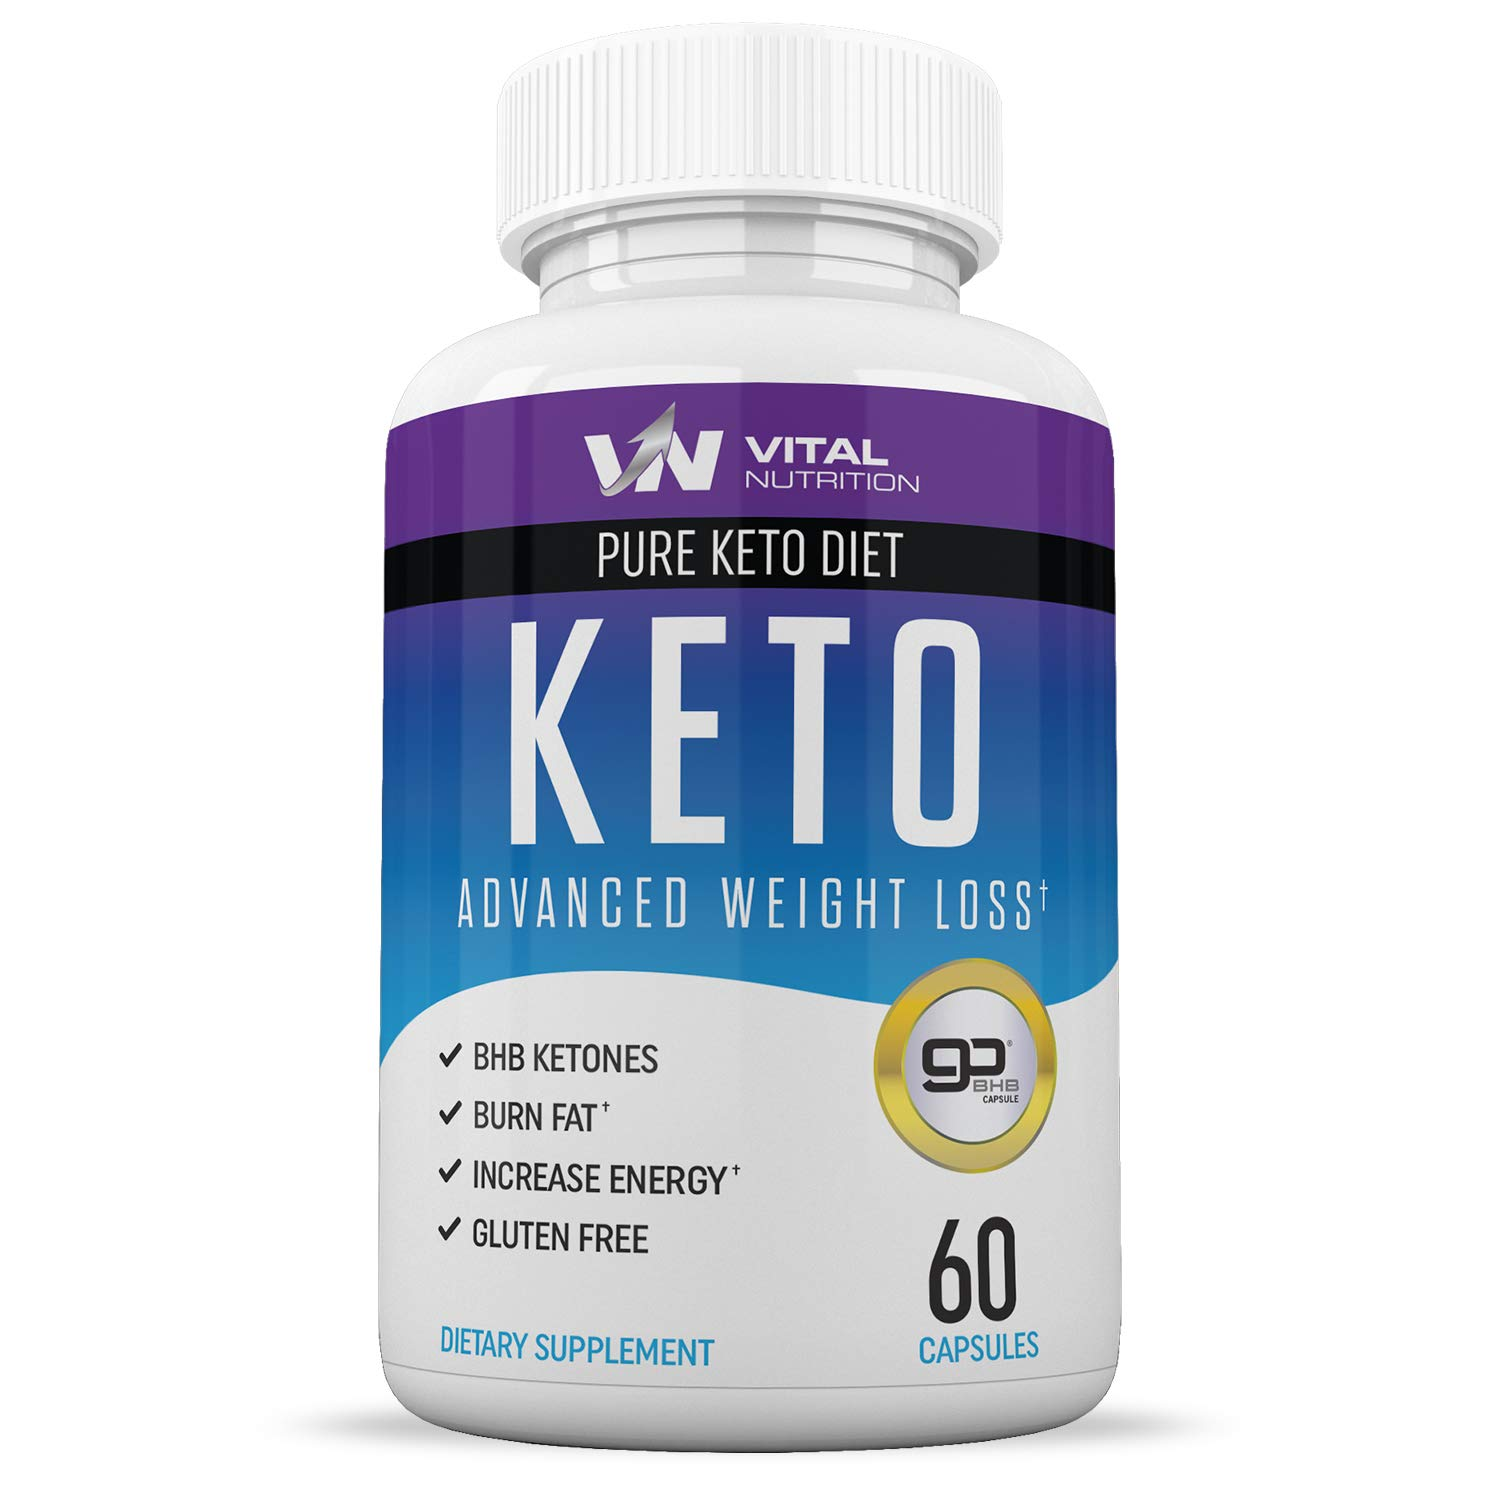 Pure Keto Diet Pills - Ketosis Supplement to Burn Fat Fast - Ketogenic Carb Blocker - Best Keto Diet Pills for Women and Men - Helps Boost Energy & Metabolism - 60 Capsules by VN Vital Nutrition